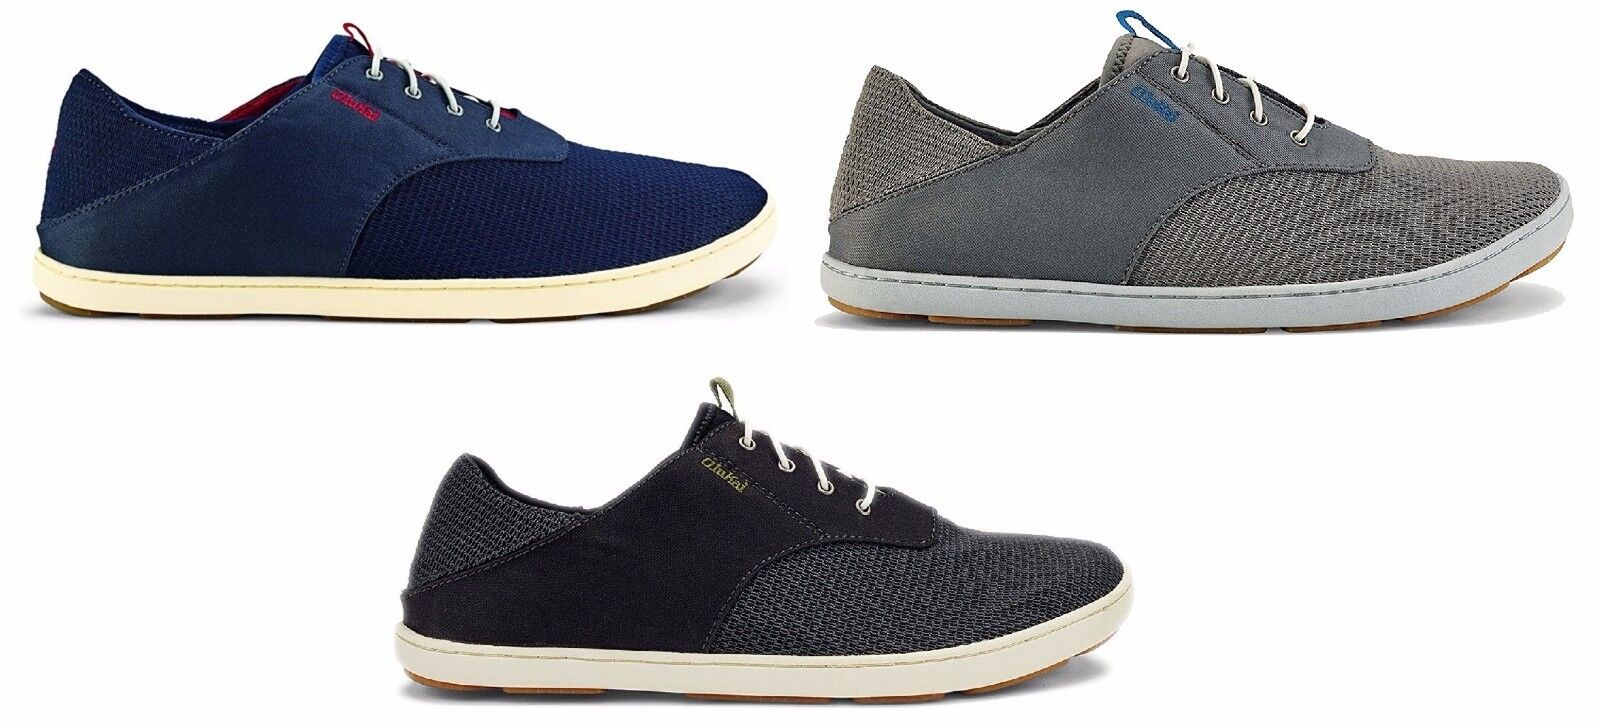 Mr/Ms OluKai Men's Nohea Moku Shoes Adequate supply and timely delivery Affordable best seller